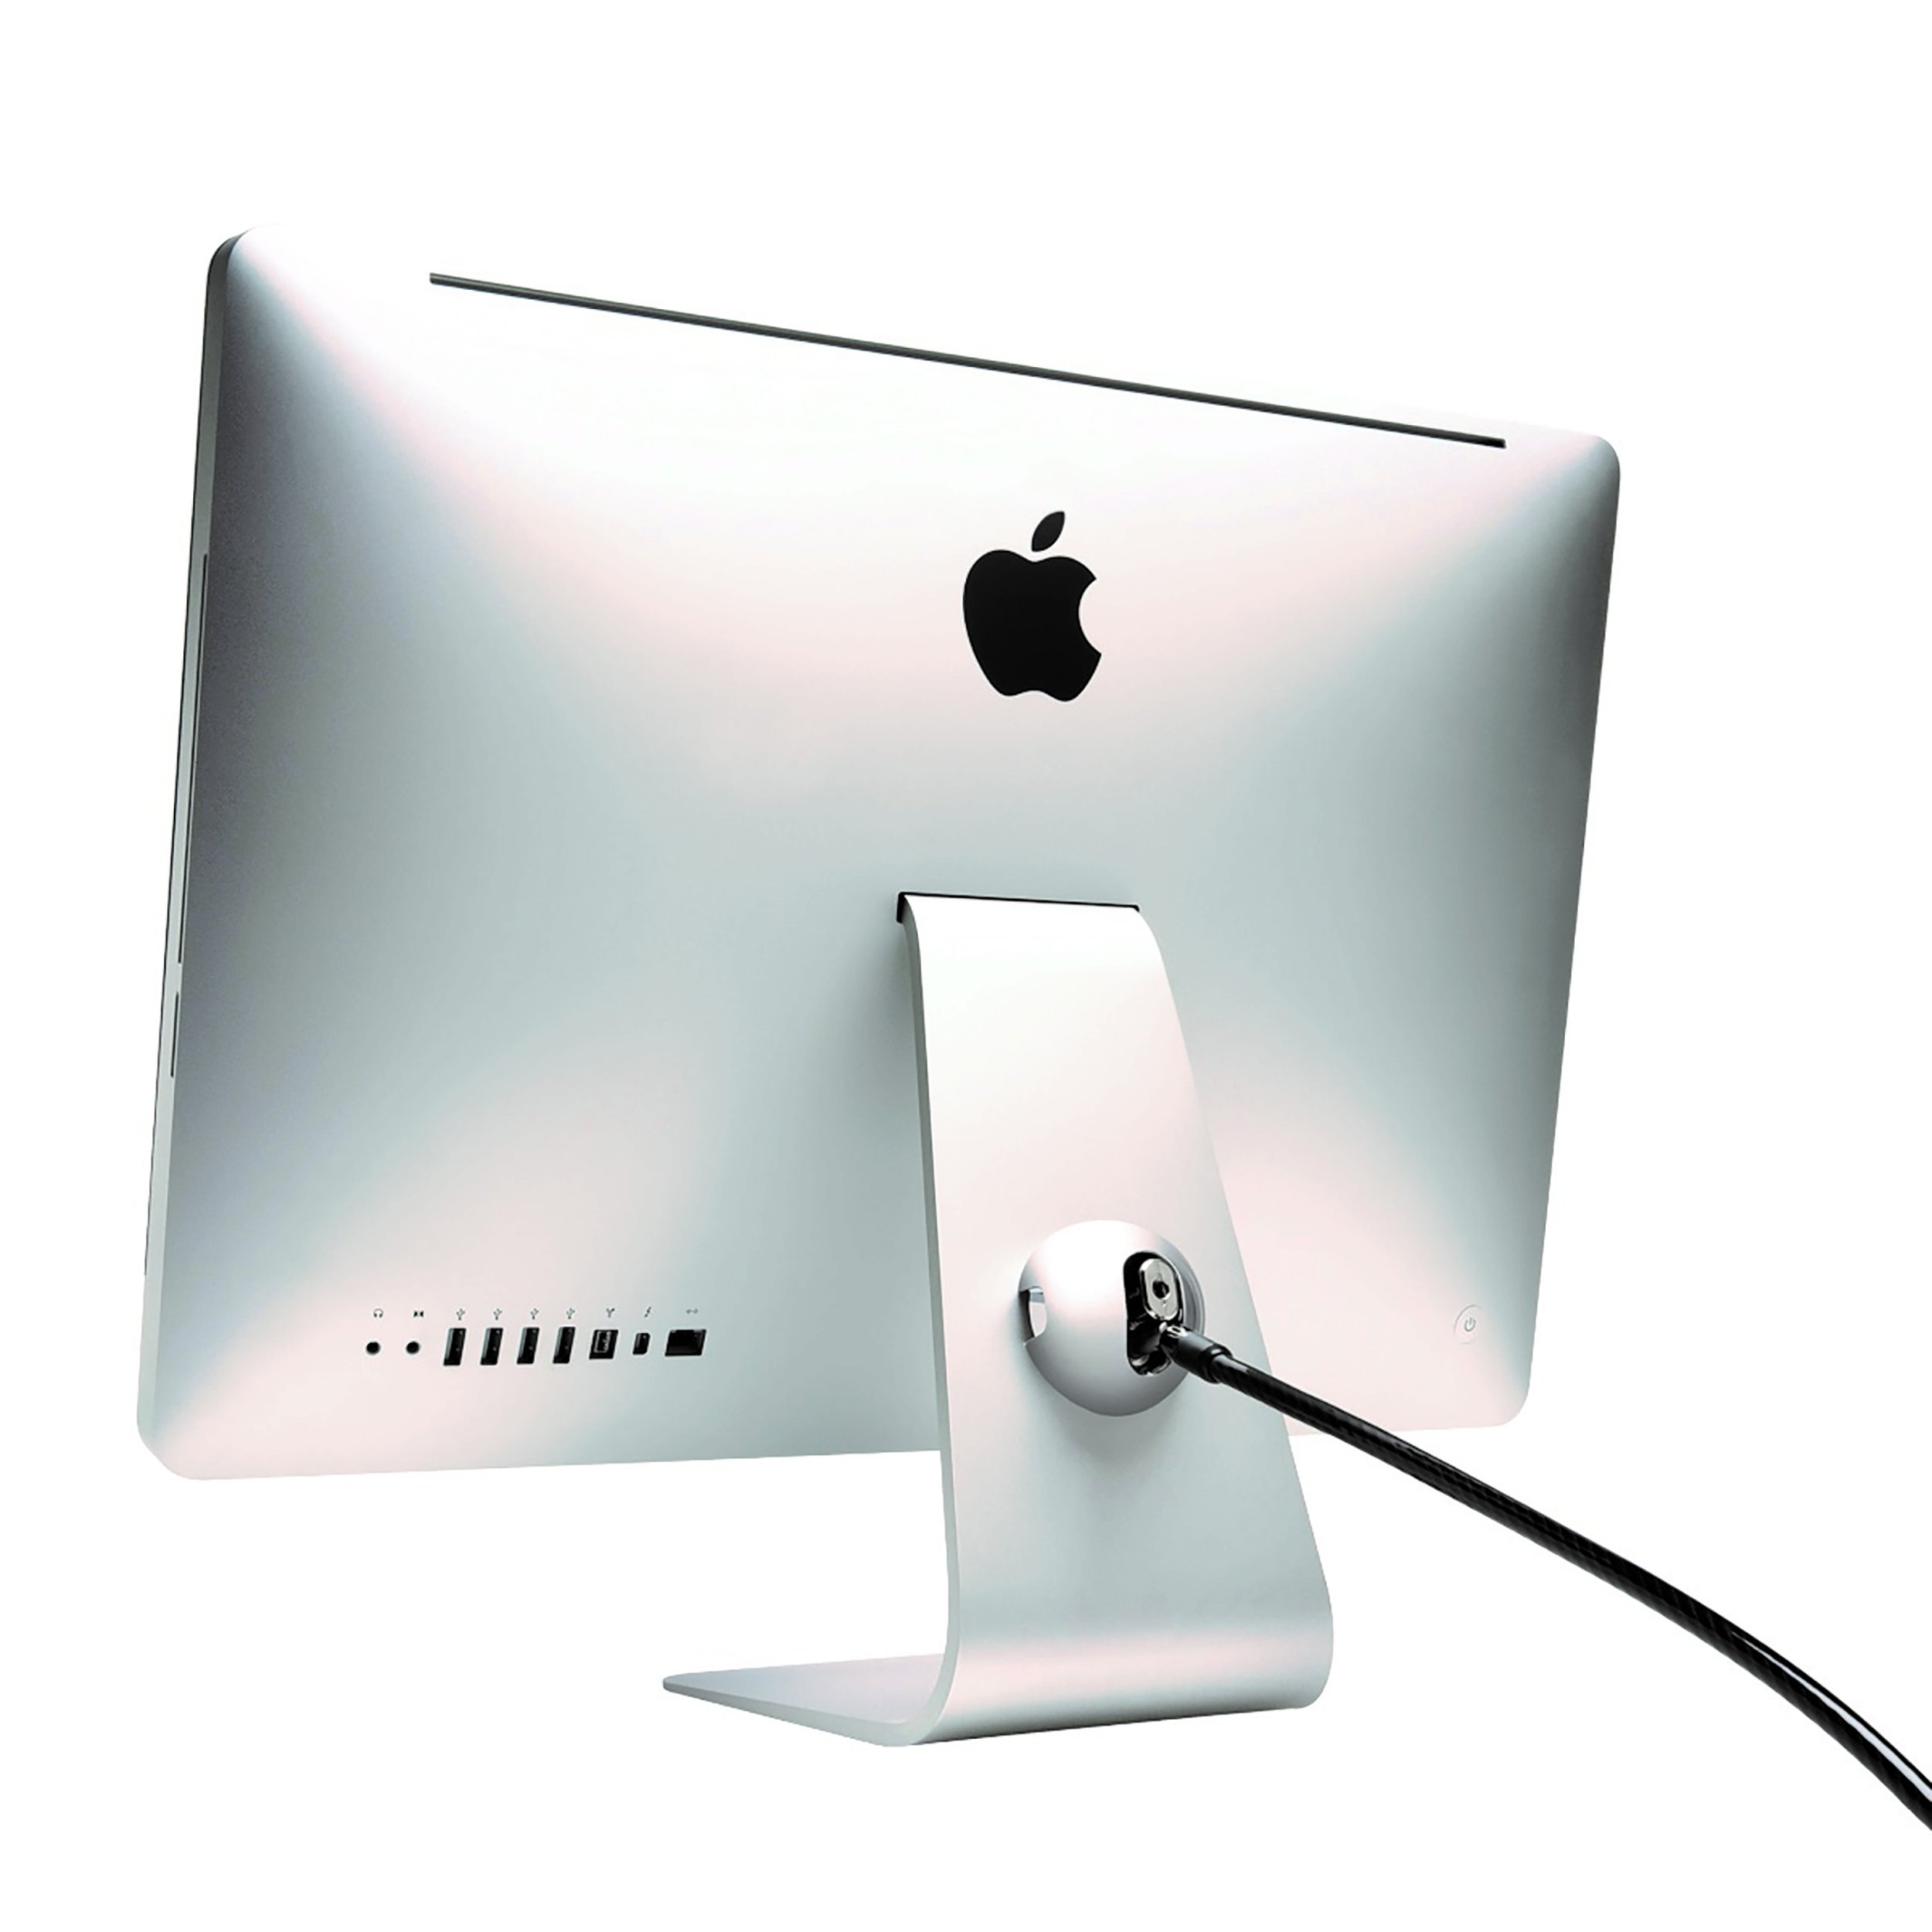 Kensington SafeDome Secure iMac Lock (K64962US)